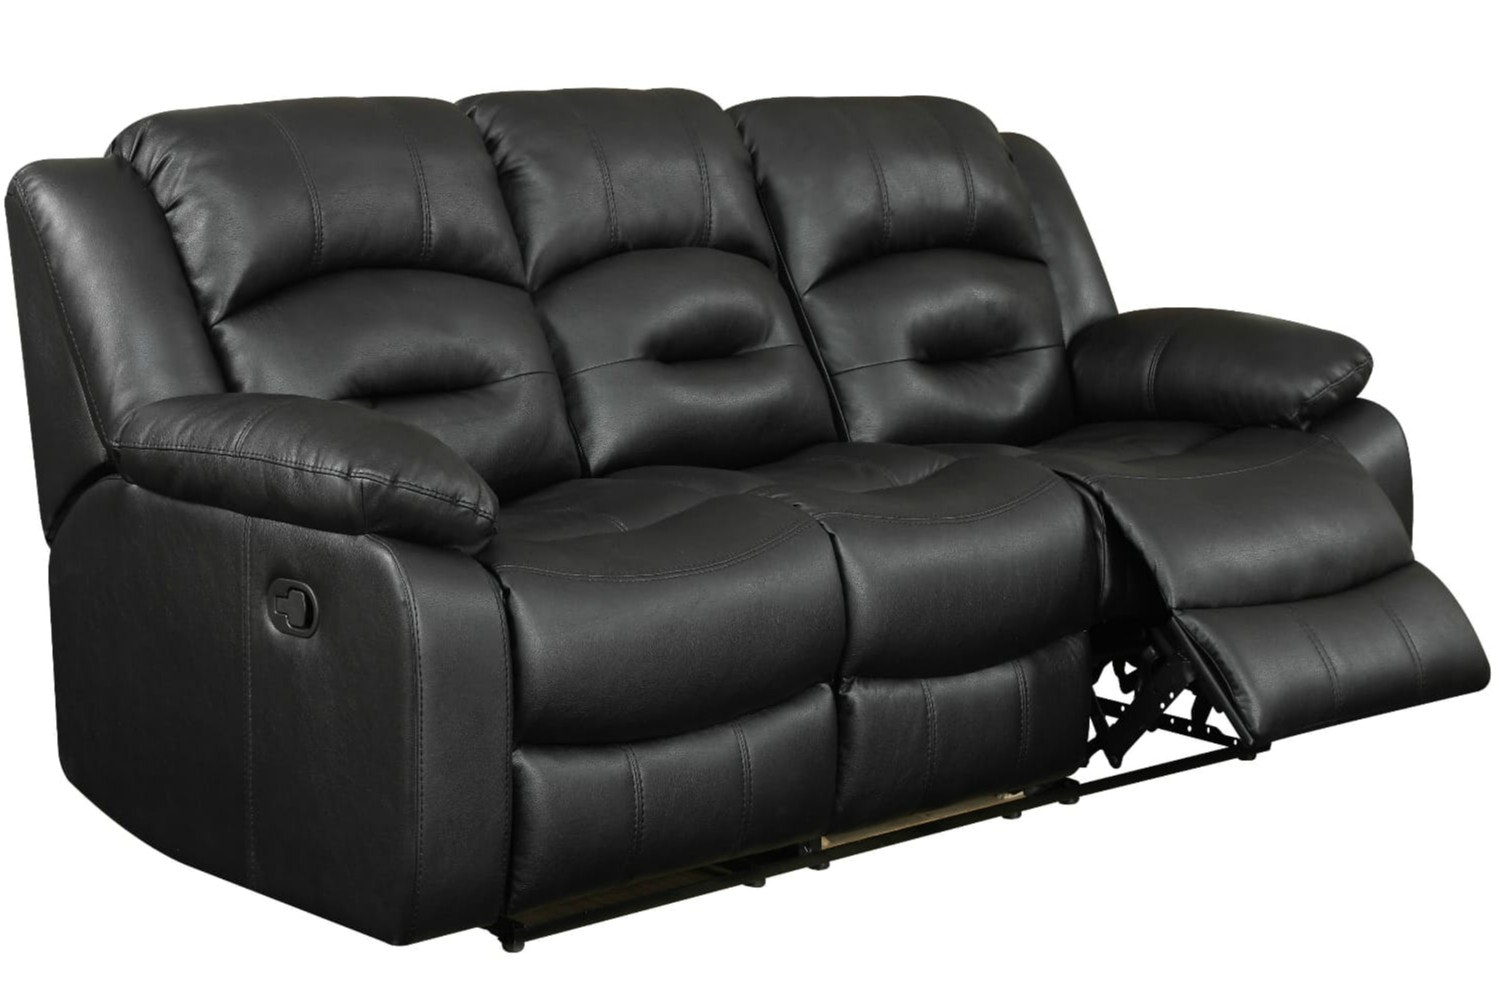 Attrayant Hunter 3 Seater Recliner Sofa | Black